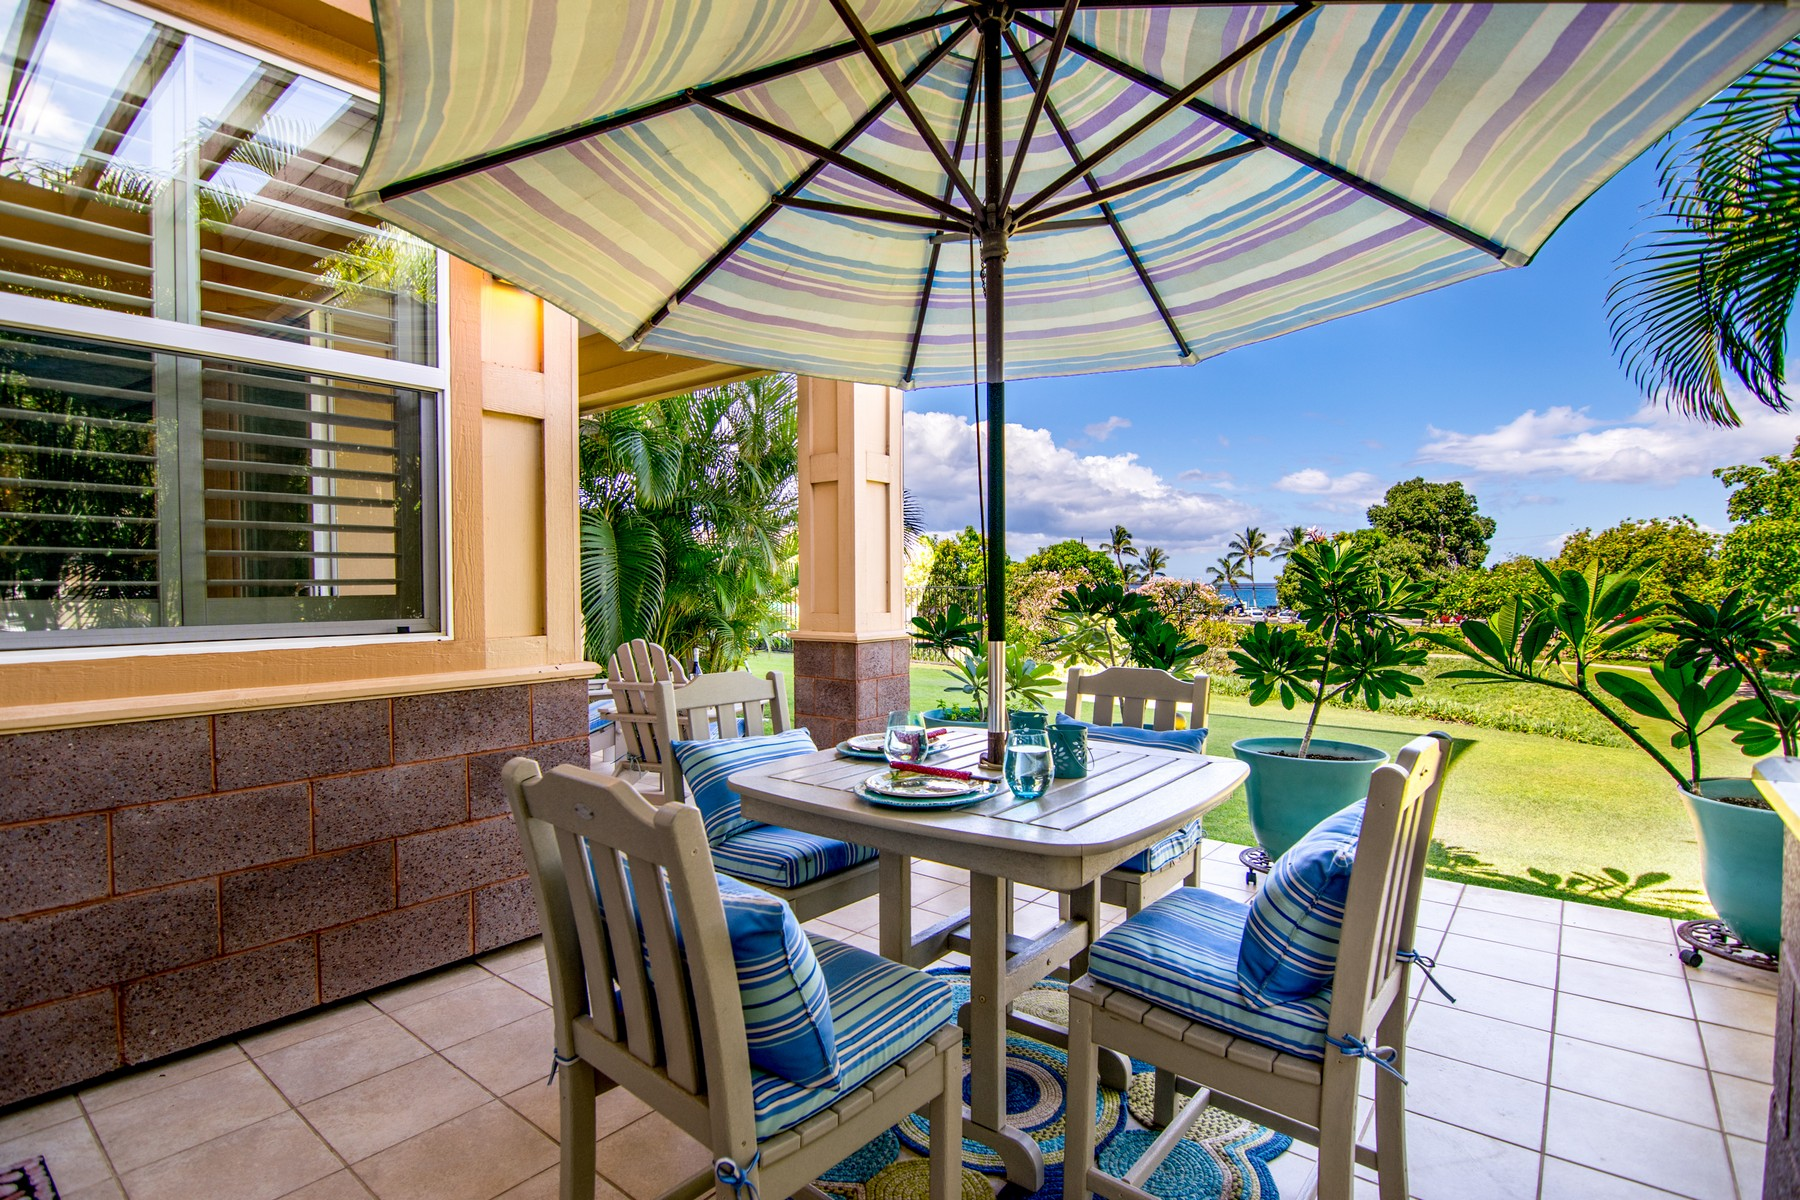 Condominium for Sale at Live The Island Life 4 Leanihi Lane, Ke Alii Ocean Villas A105 Kihei, Hawaii, 96753 United States